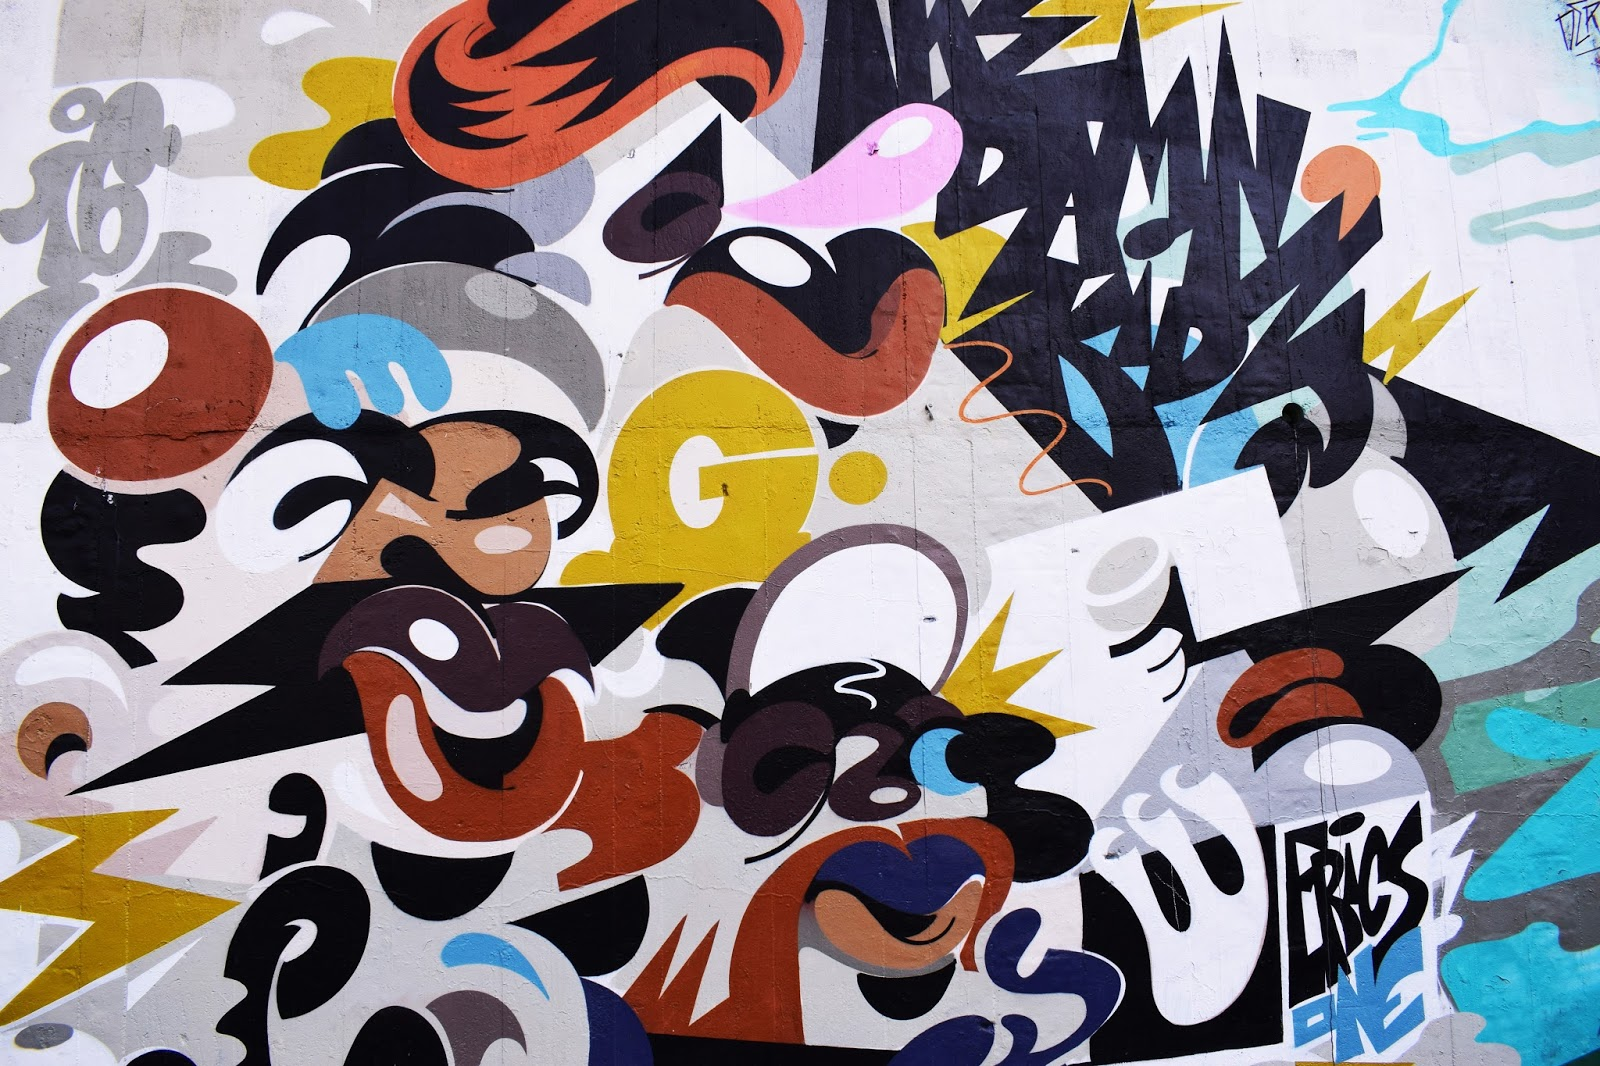 freshen up your living space for summer - A colourful graffiti mural